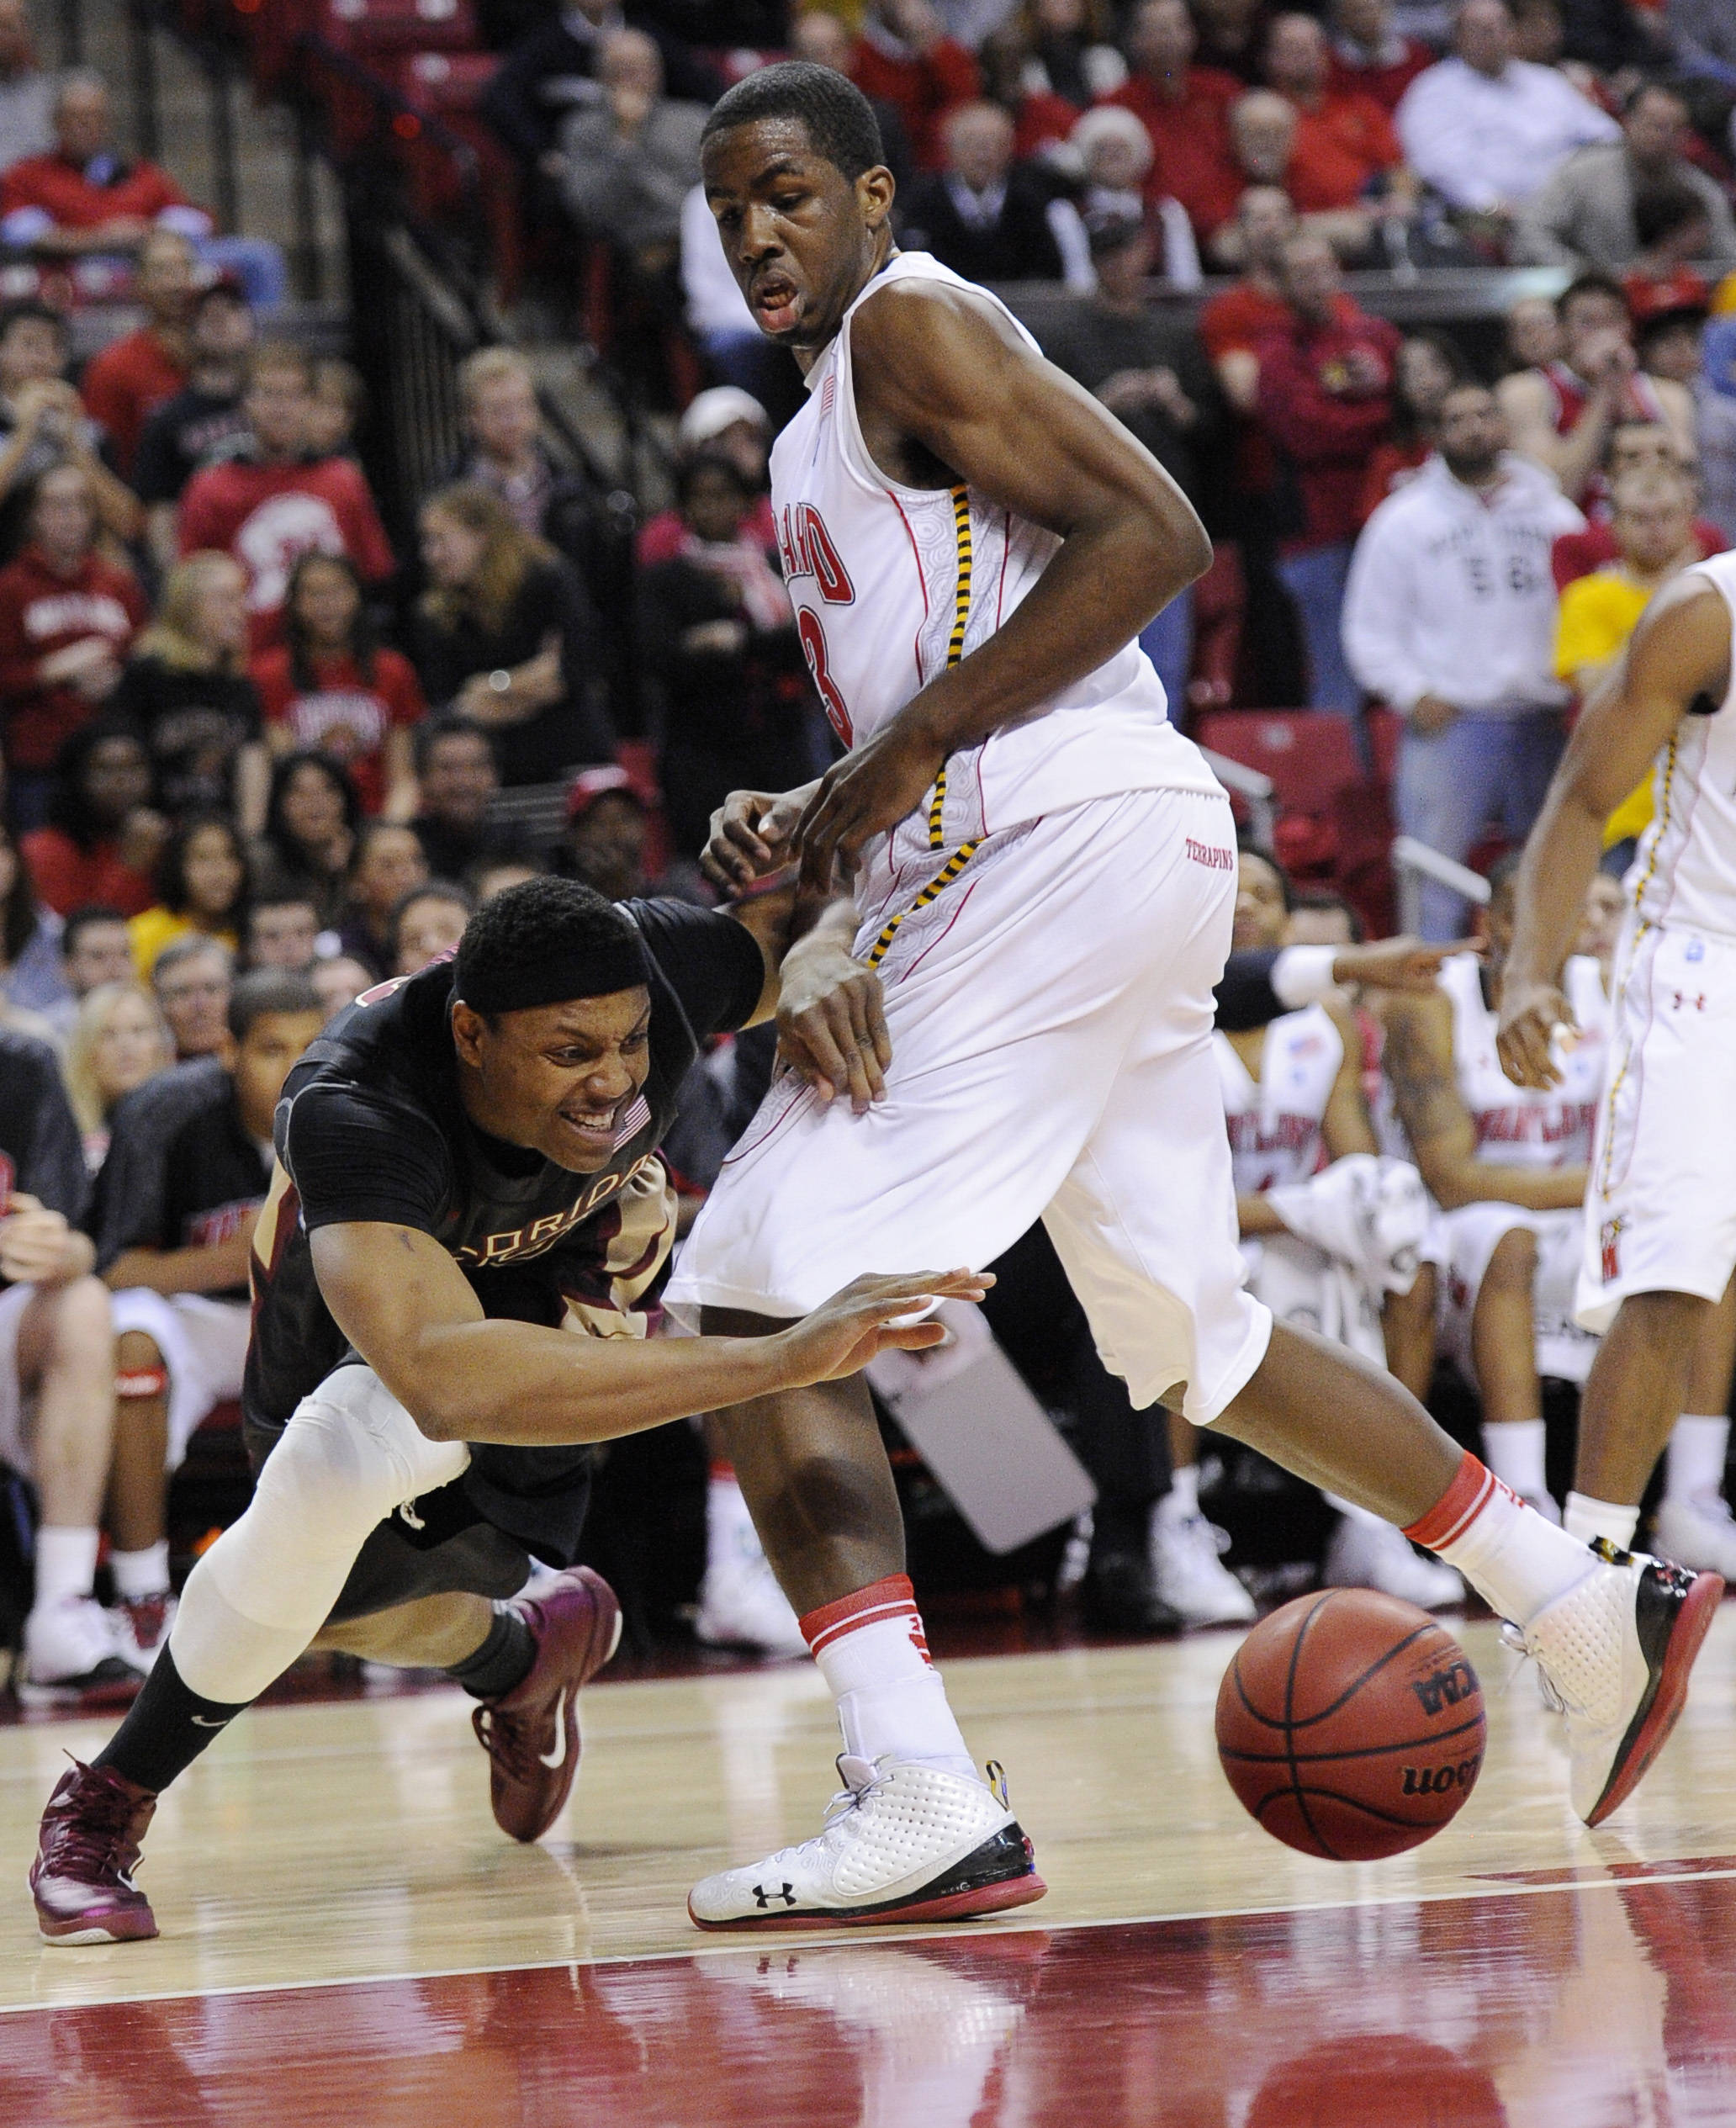 Florida State forward Terrance Shannon, left, goes for a loose ball against Maryland forward Dino Gregory, right, during the first half of an NCAA college basketball game, Wednesday, Feb. 23, 2011, in College Park, Md. (AP Photo/Nick Wass)